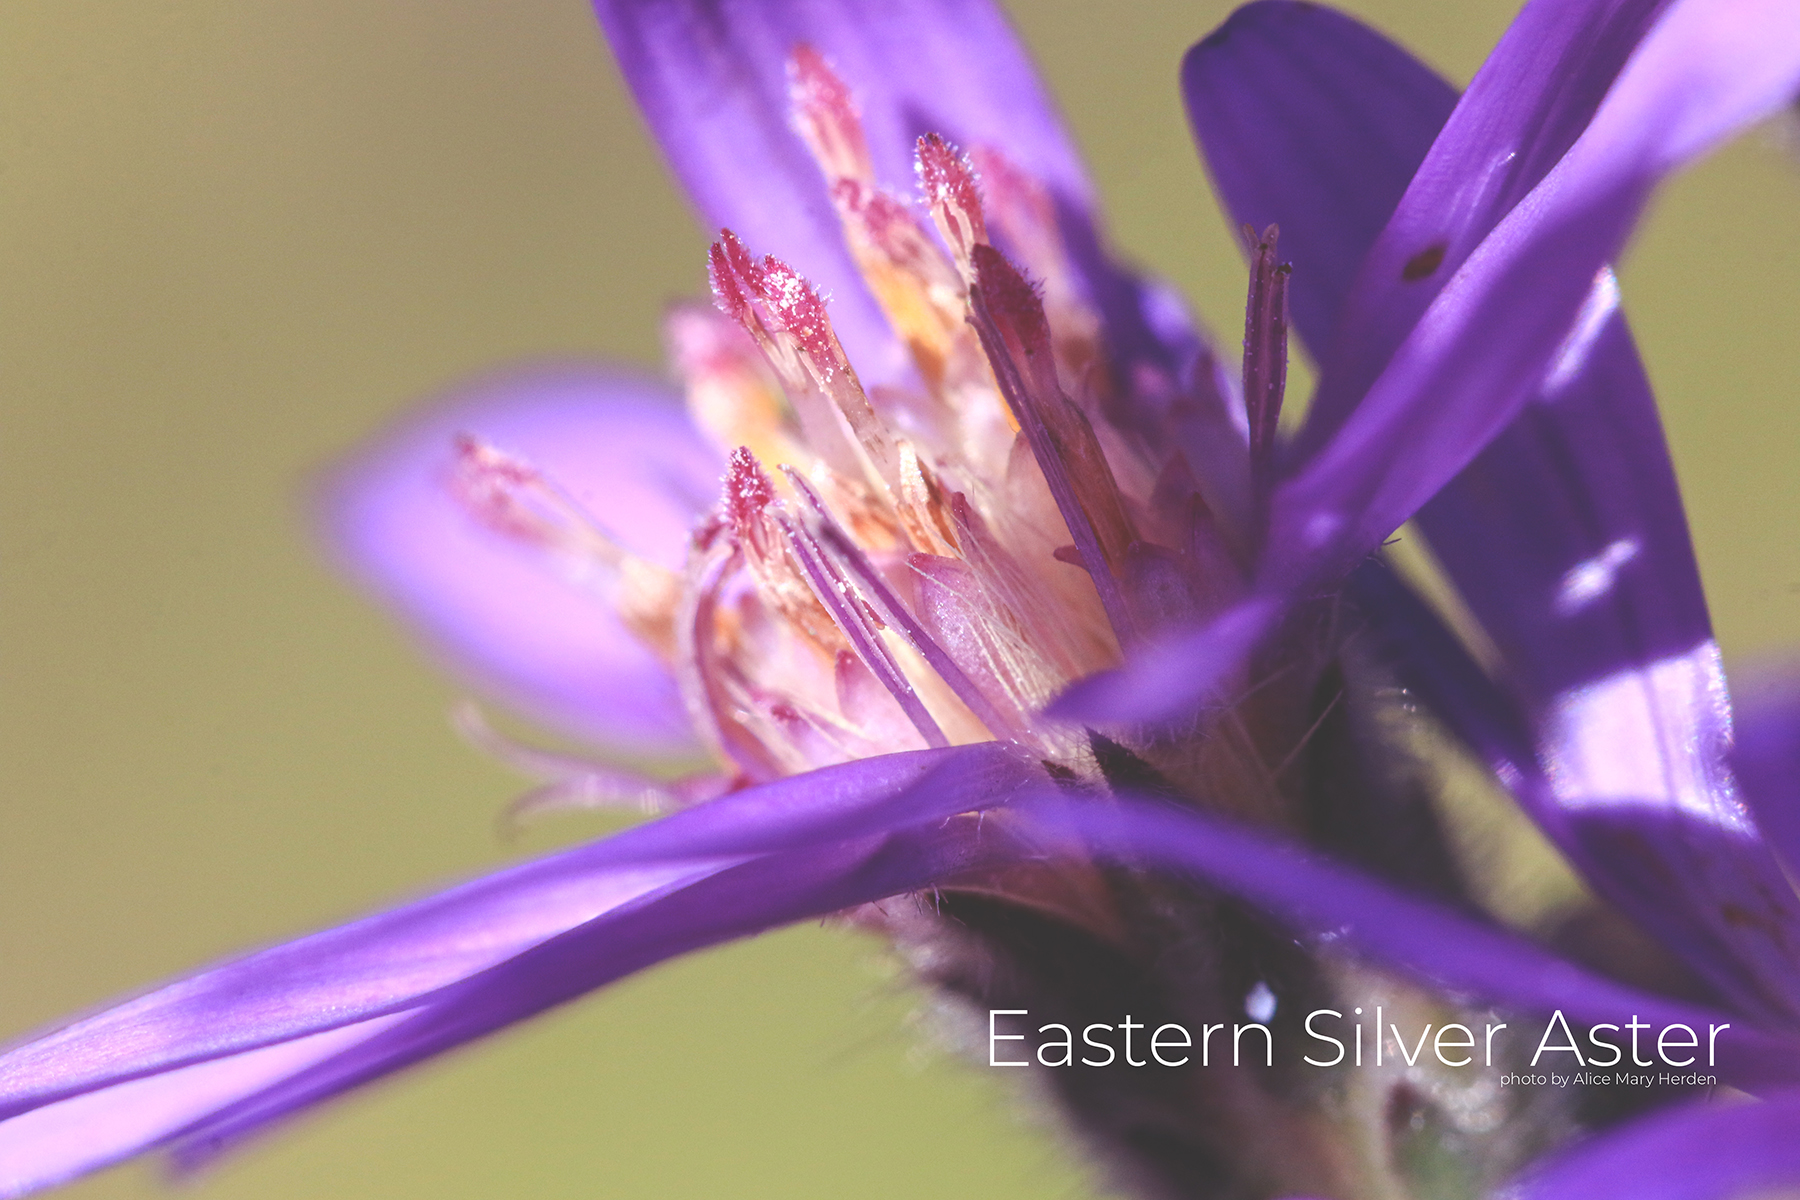 Eastern Silver Aster